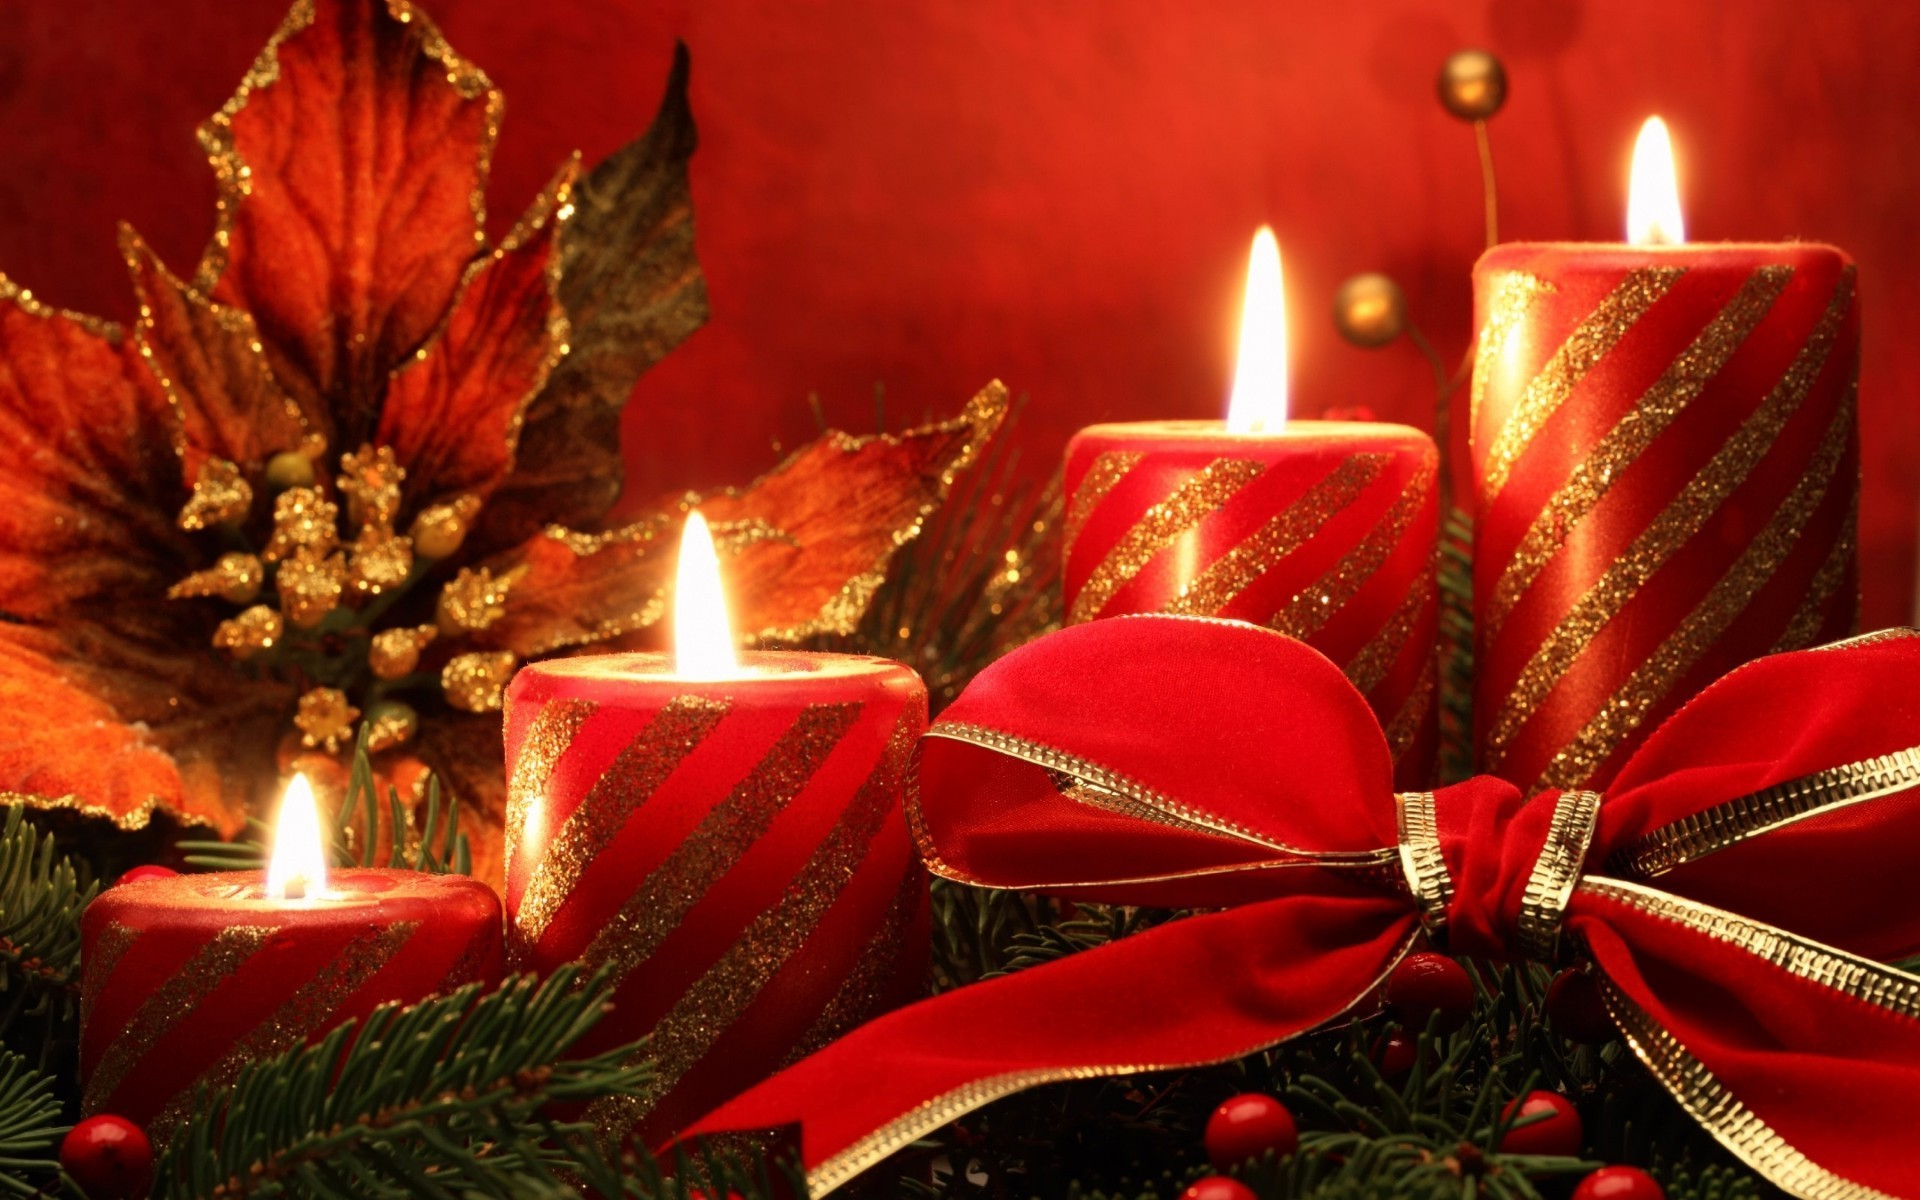 Red Christmas candles Android wallpapers for free